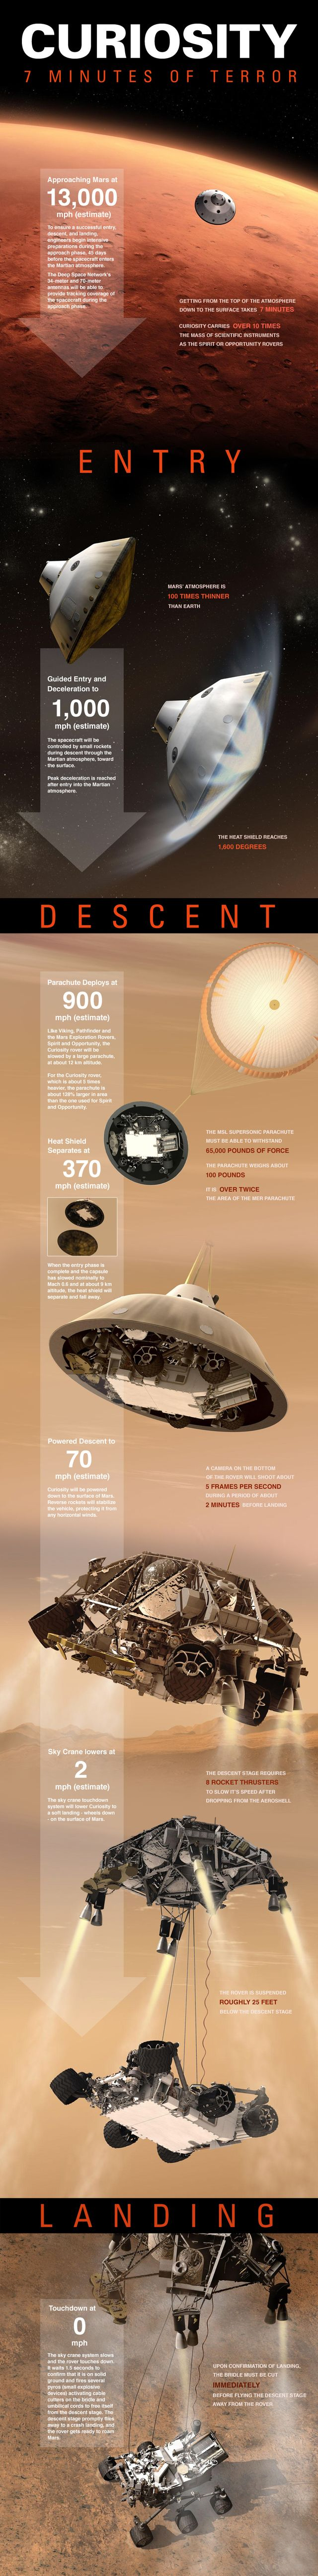 Looking forward to watching Curiosity land! August 5/6, 2012. Jet Propulsion Laboratory